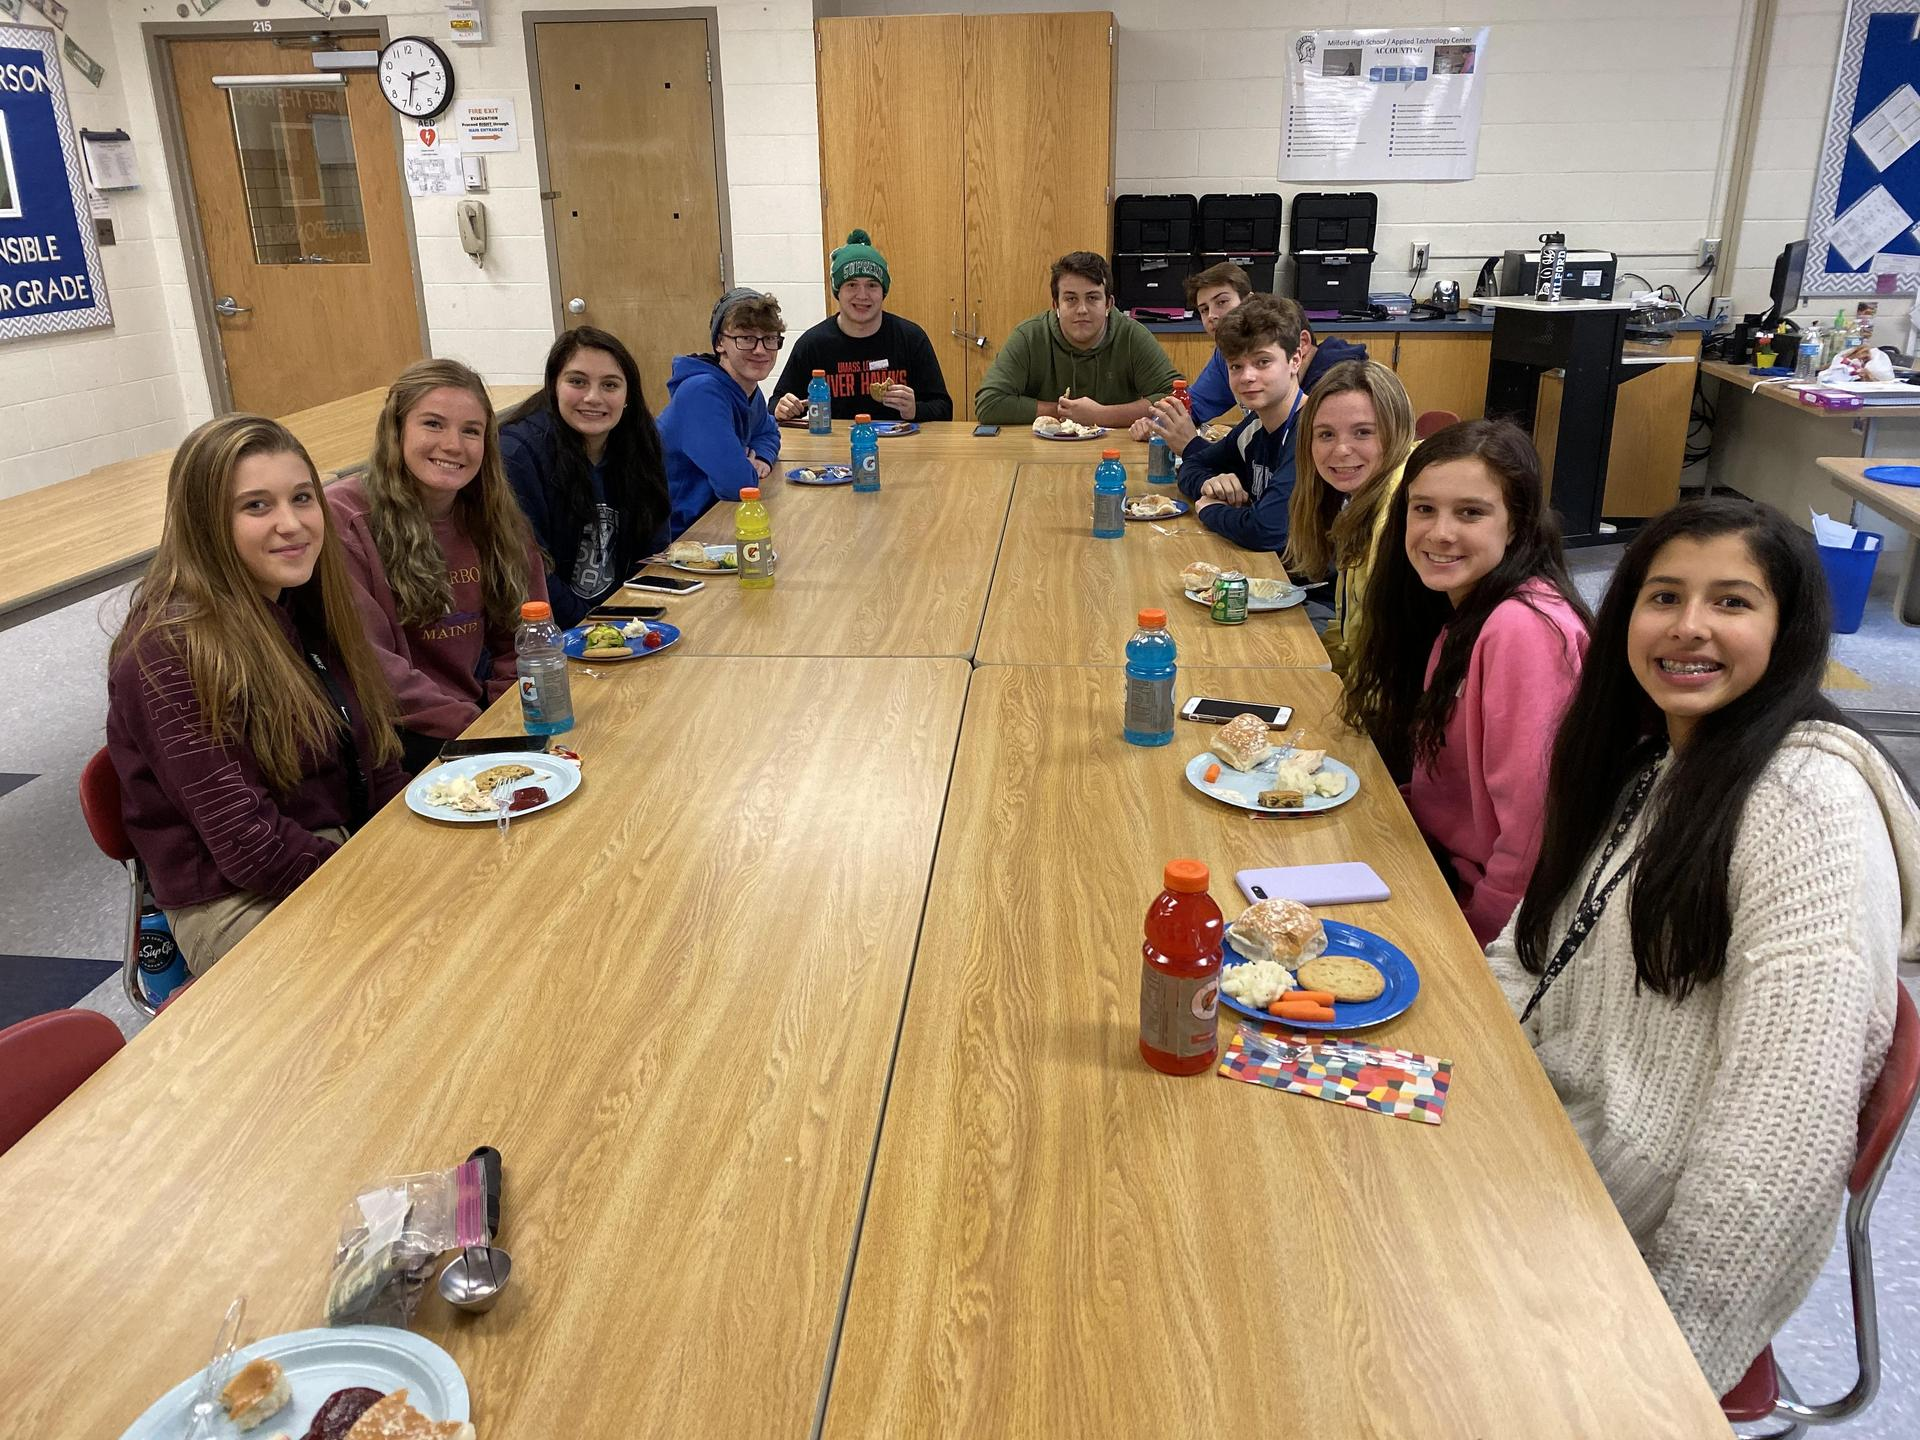 Students eating Thanksgiving meal